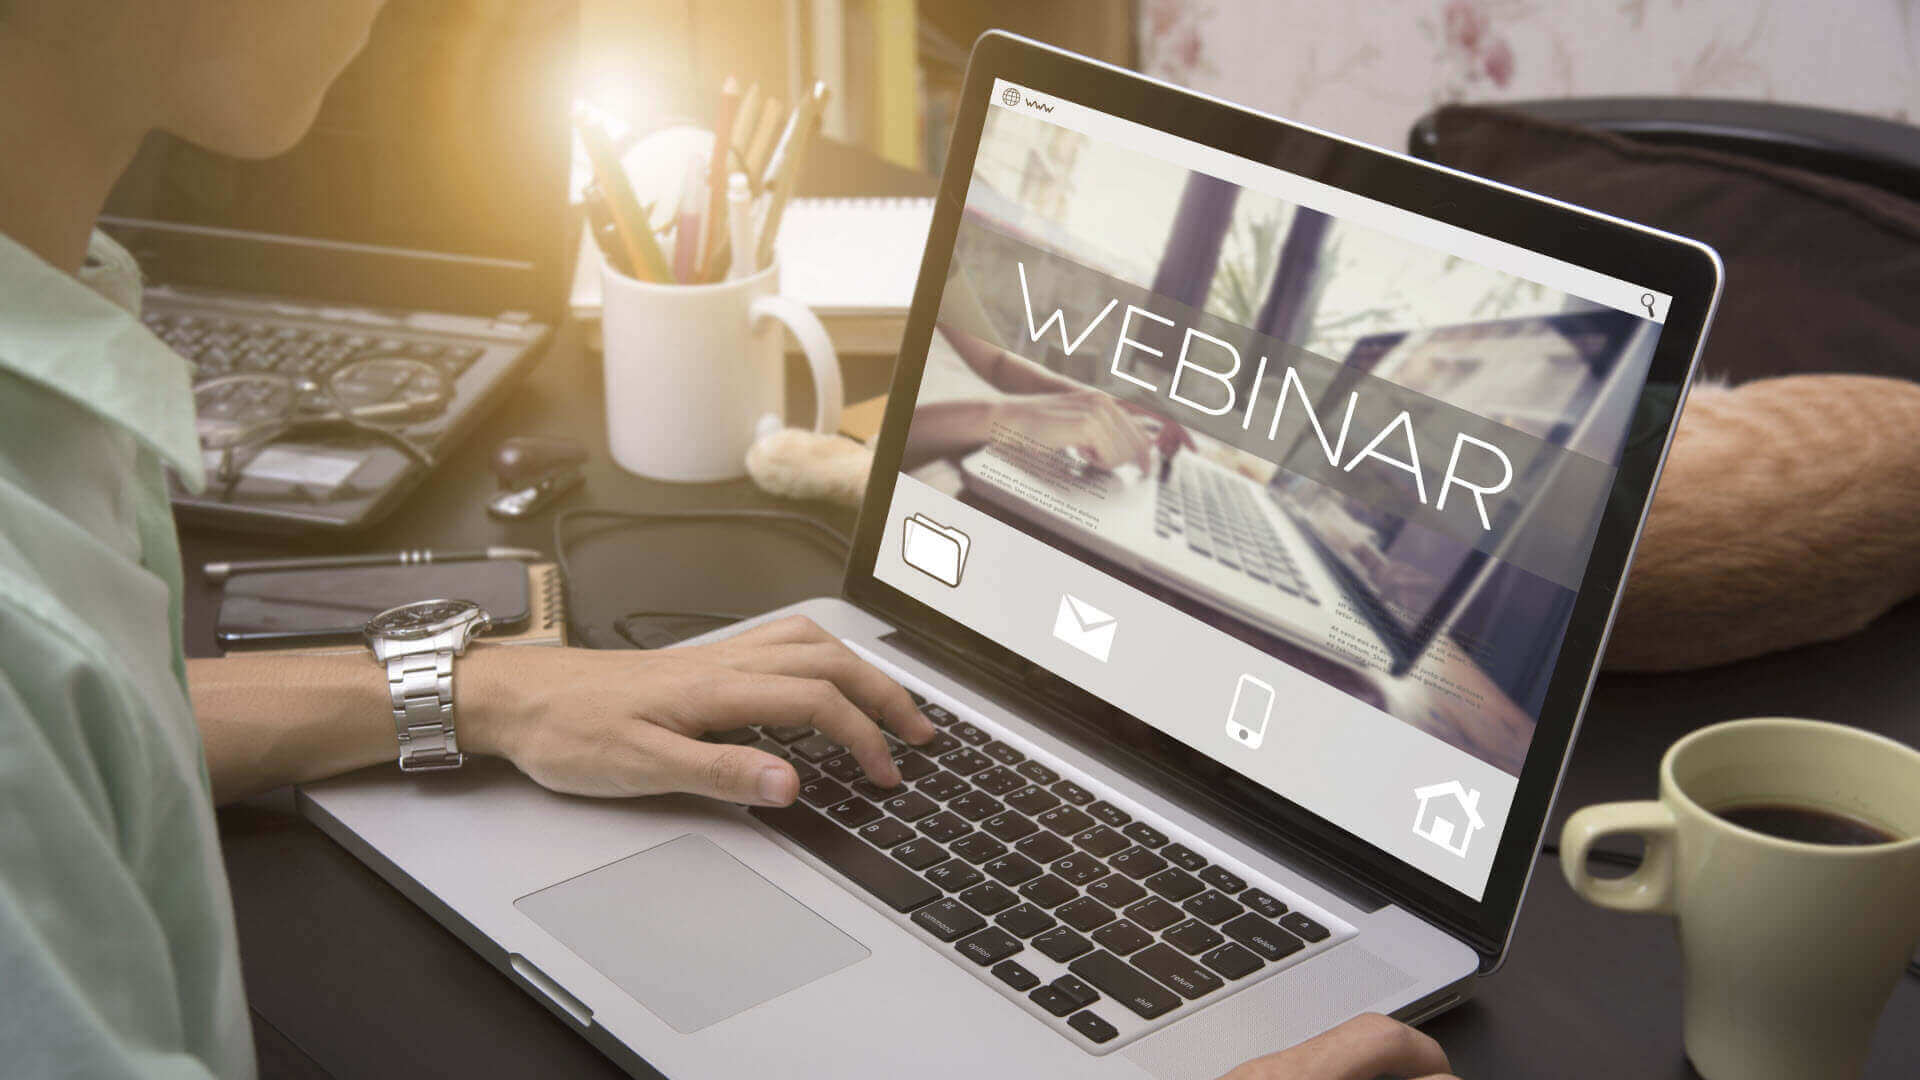 Built your own webinar platform or webinar service